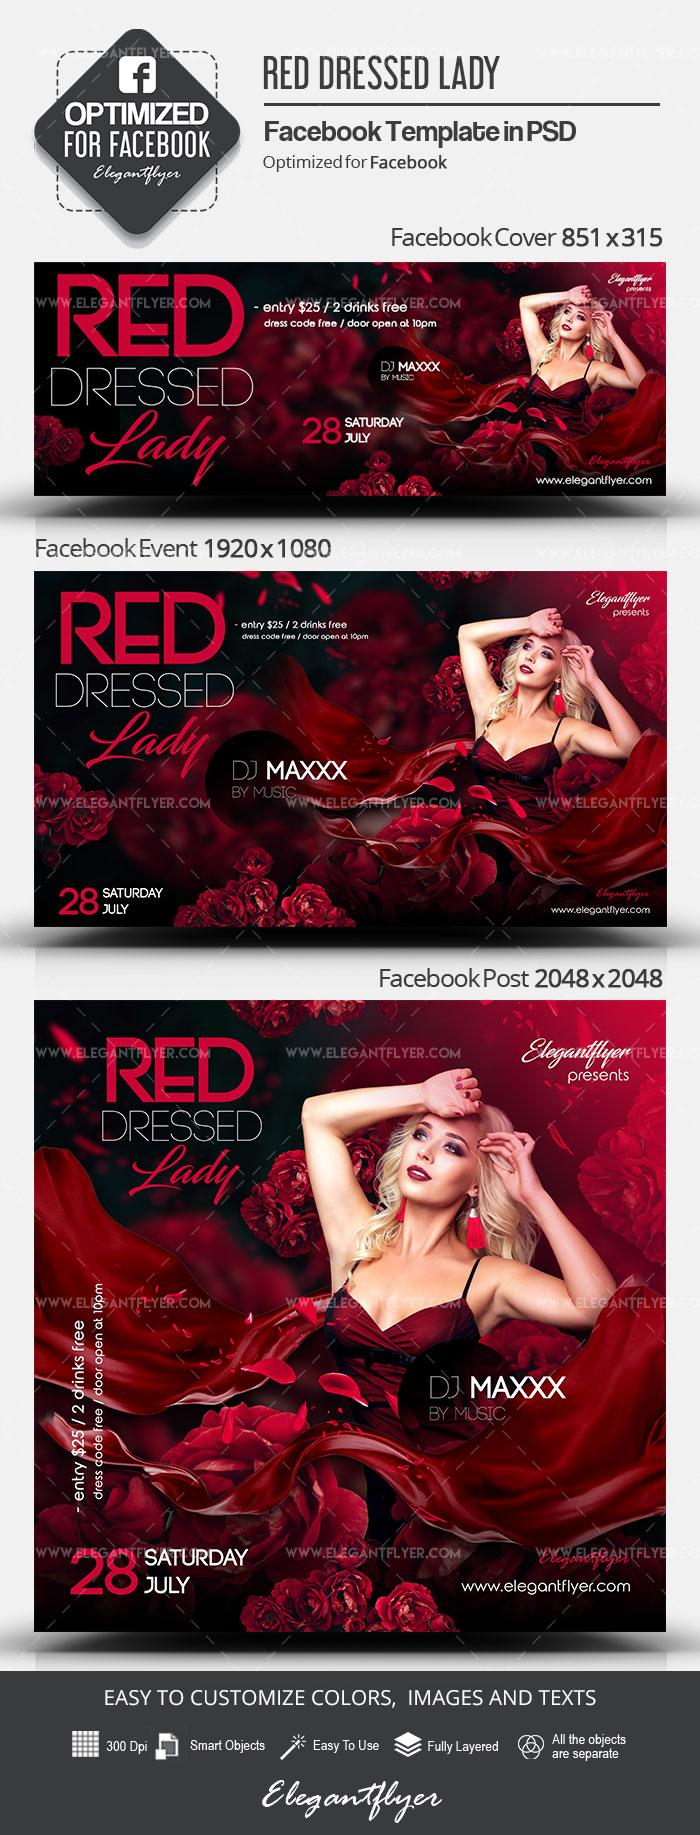 Red Dressed Lady – Facebook Cover Template in PSD + Post + Event cover